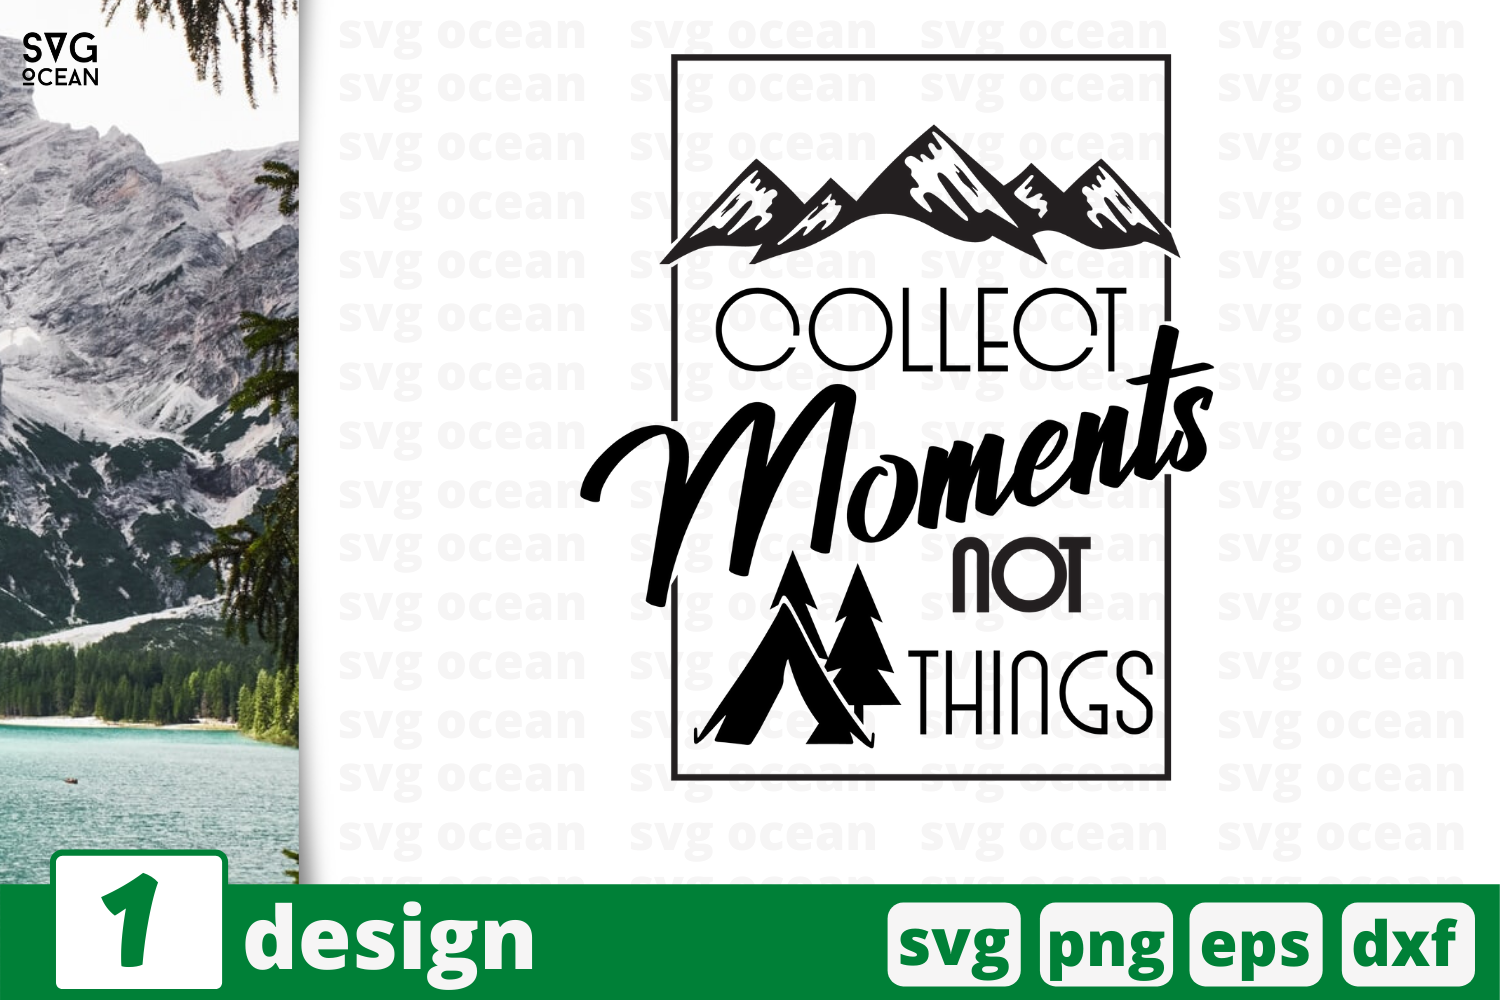 Collect Moments Graphic By Svgocean Creative Fabrica